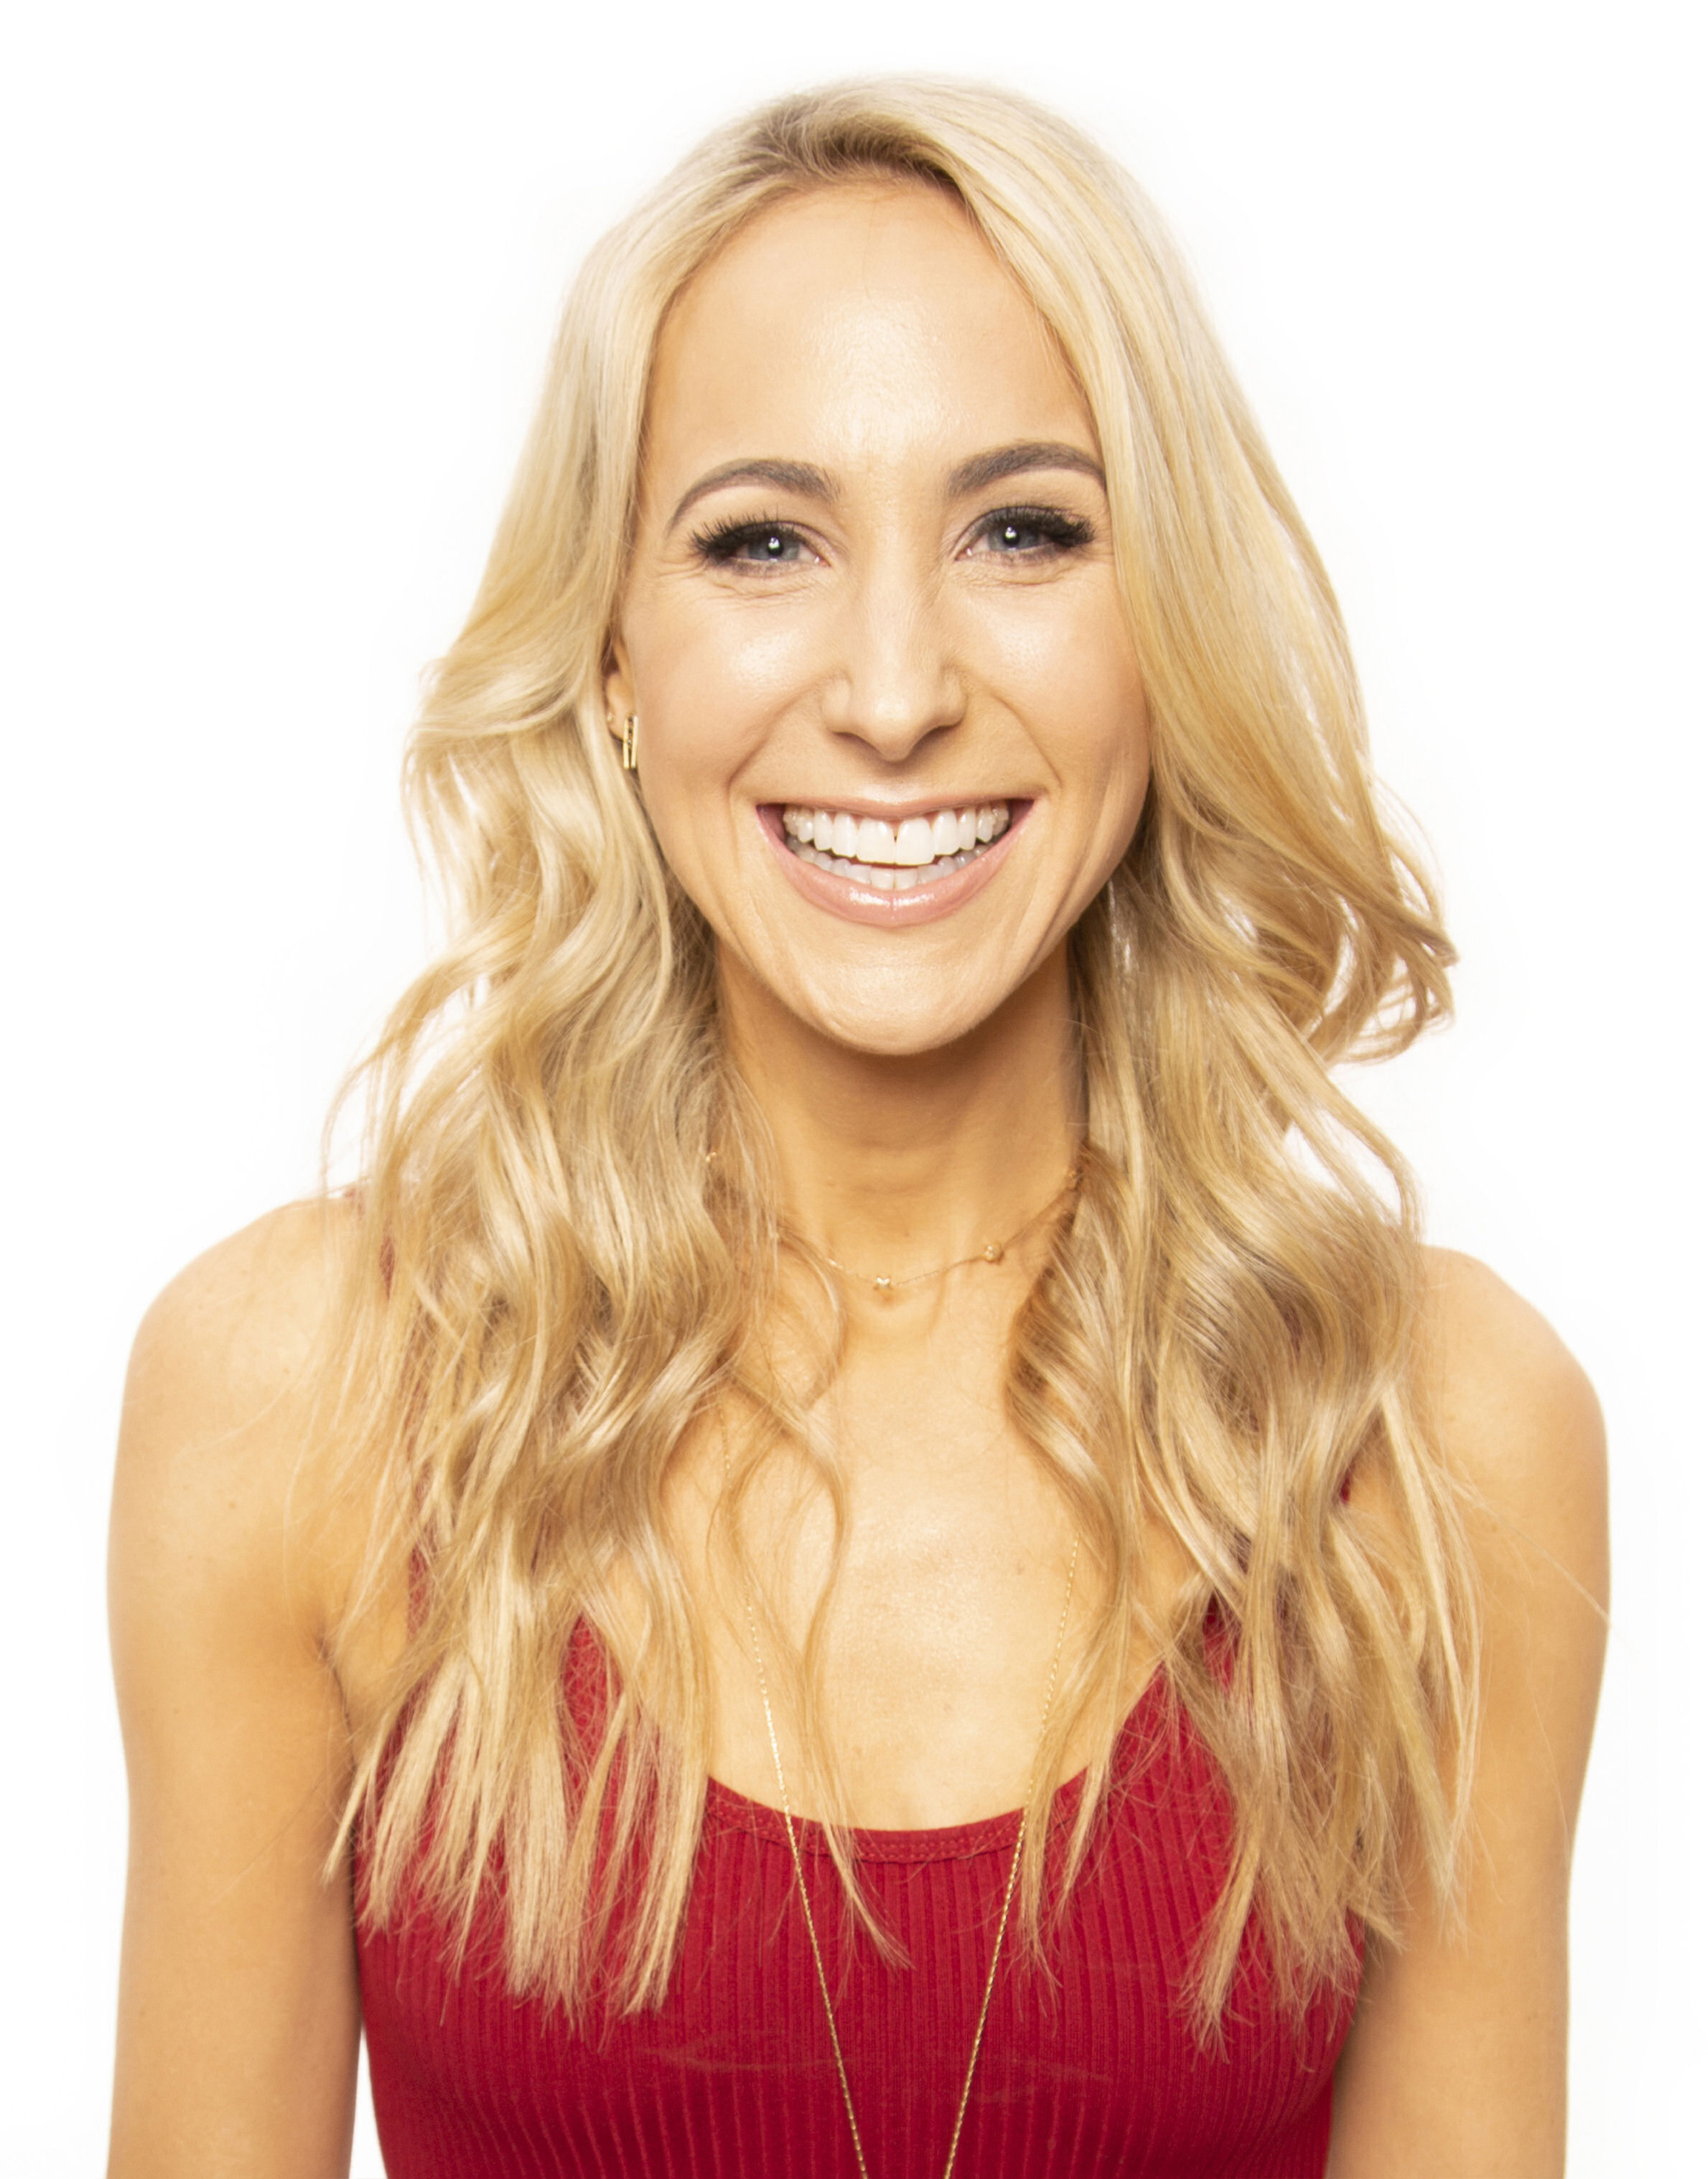 Buy Tickets to Nikki Glaser, Todd Barry, Mike Vecchione ...